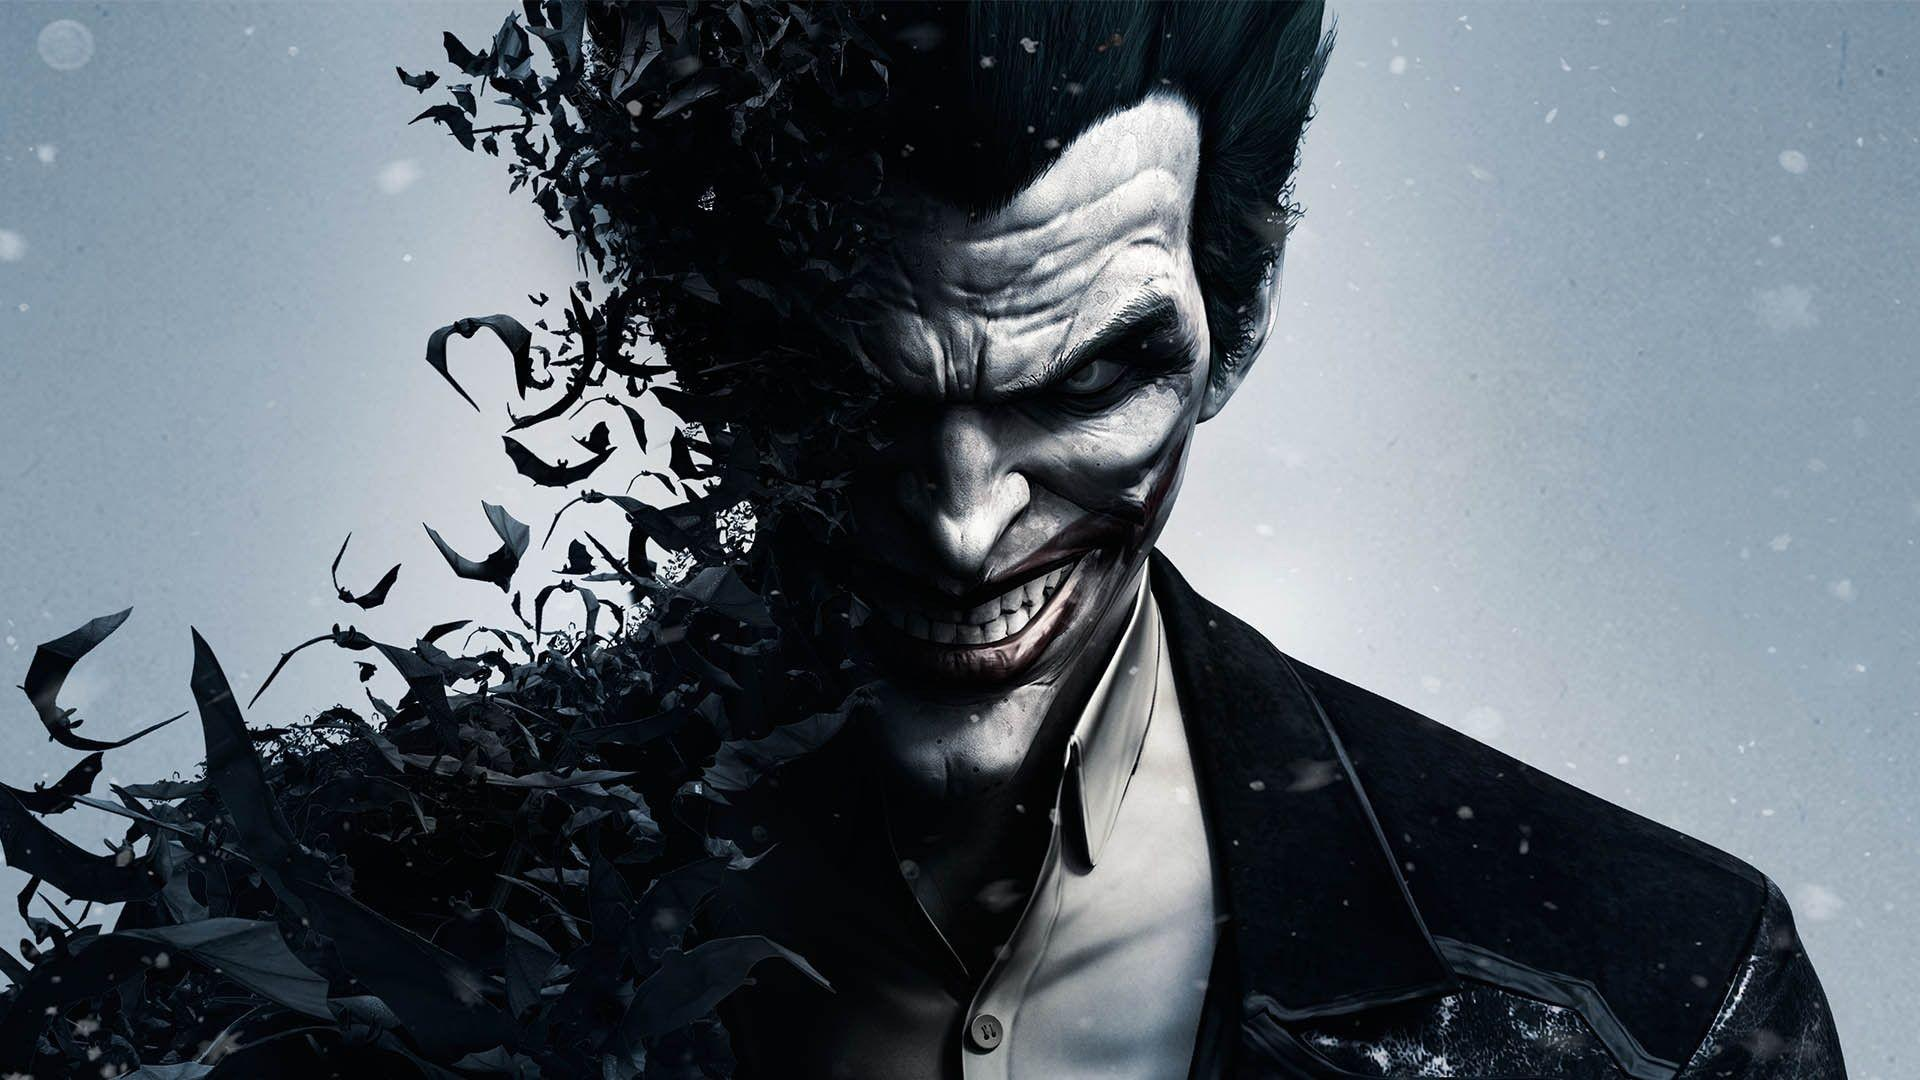 Download HD Batman Arkham Origins Joker Smile And Bats Wallpapers